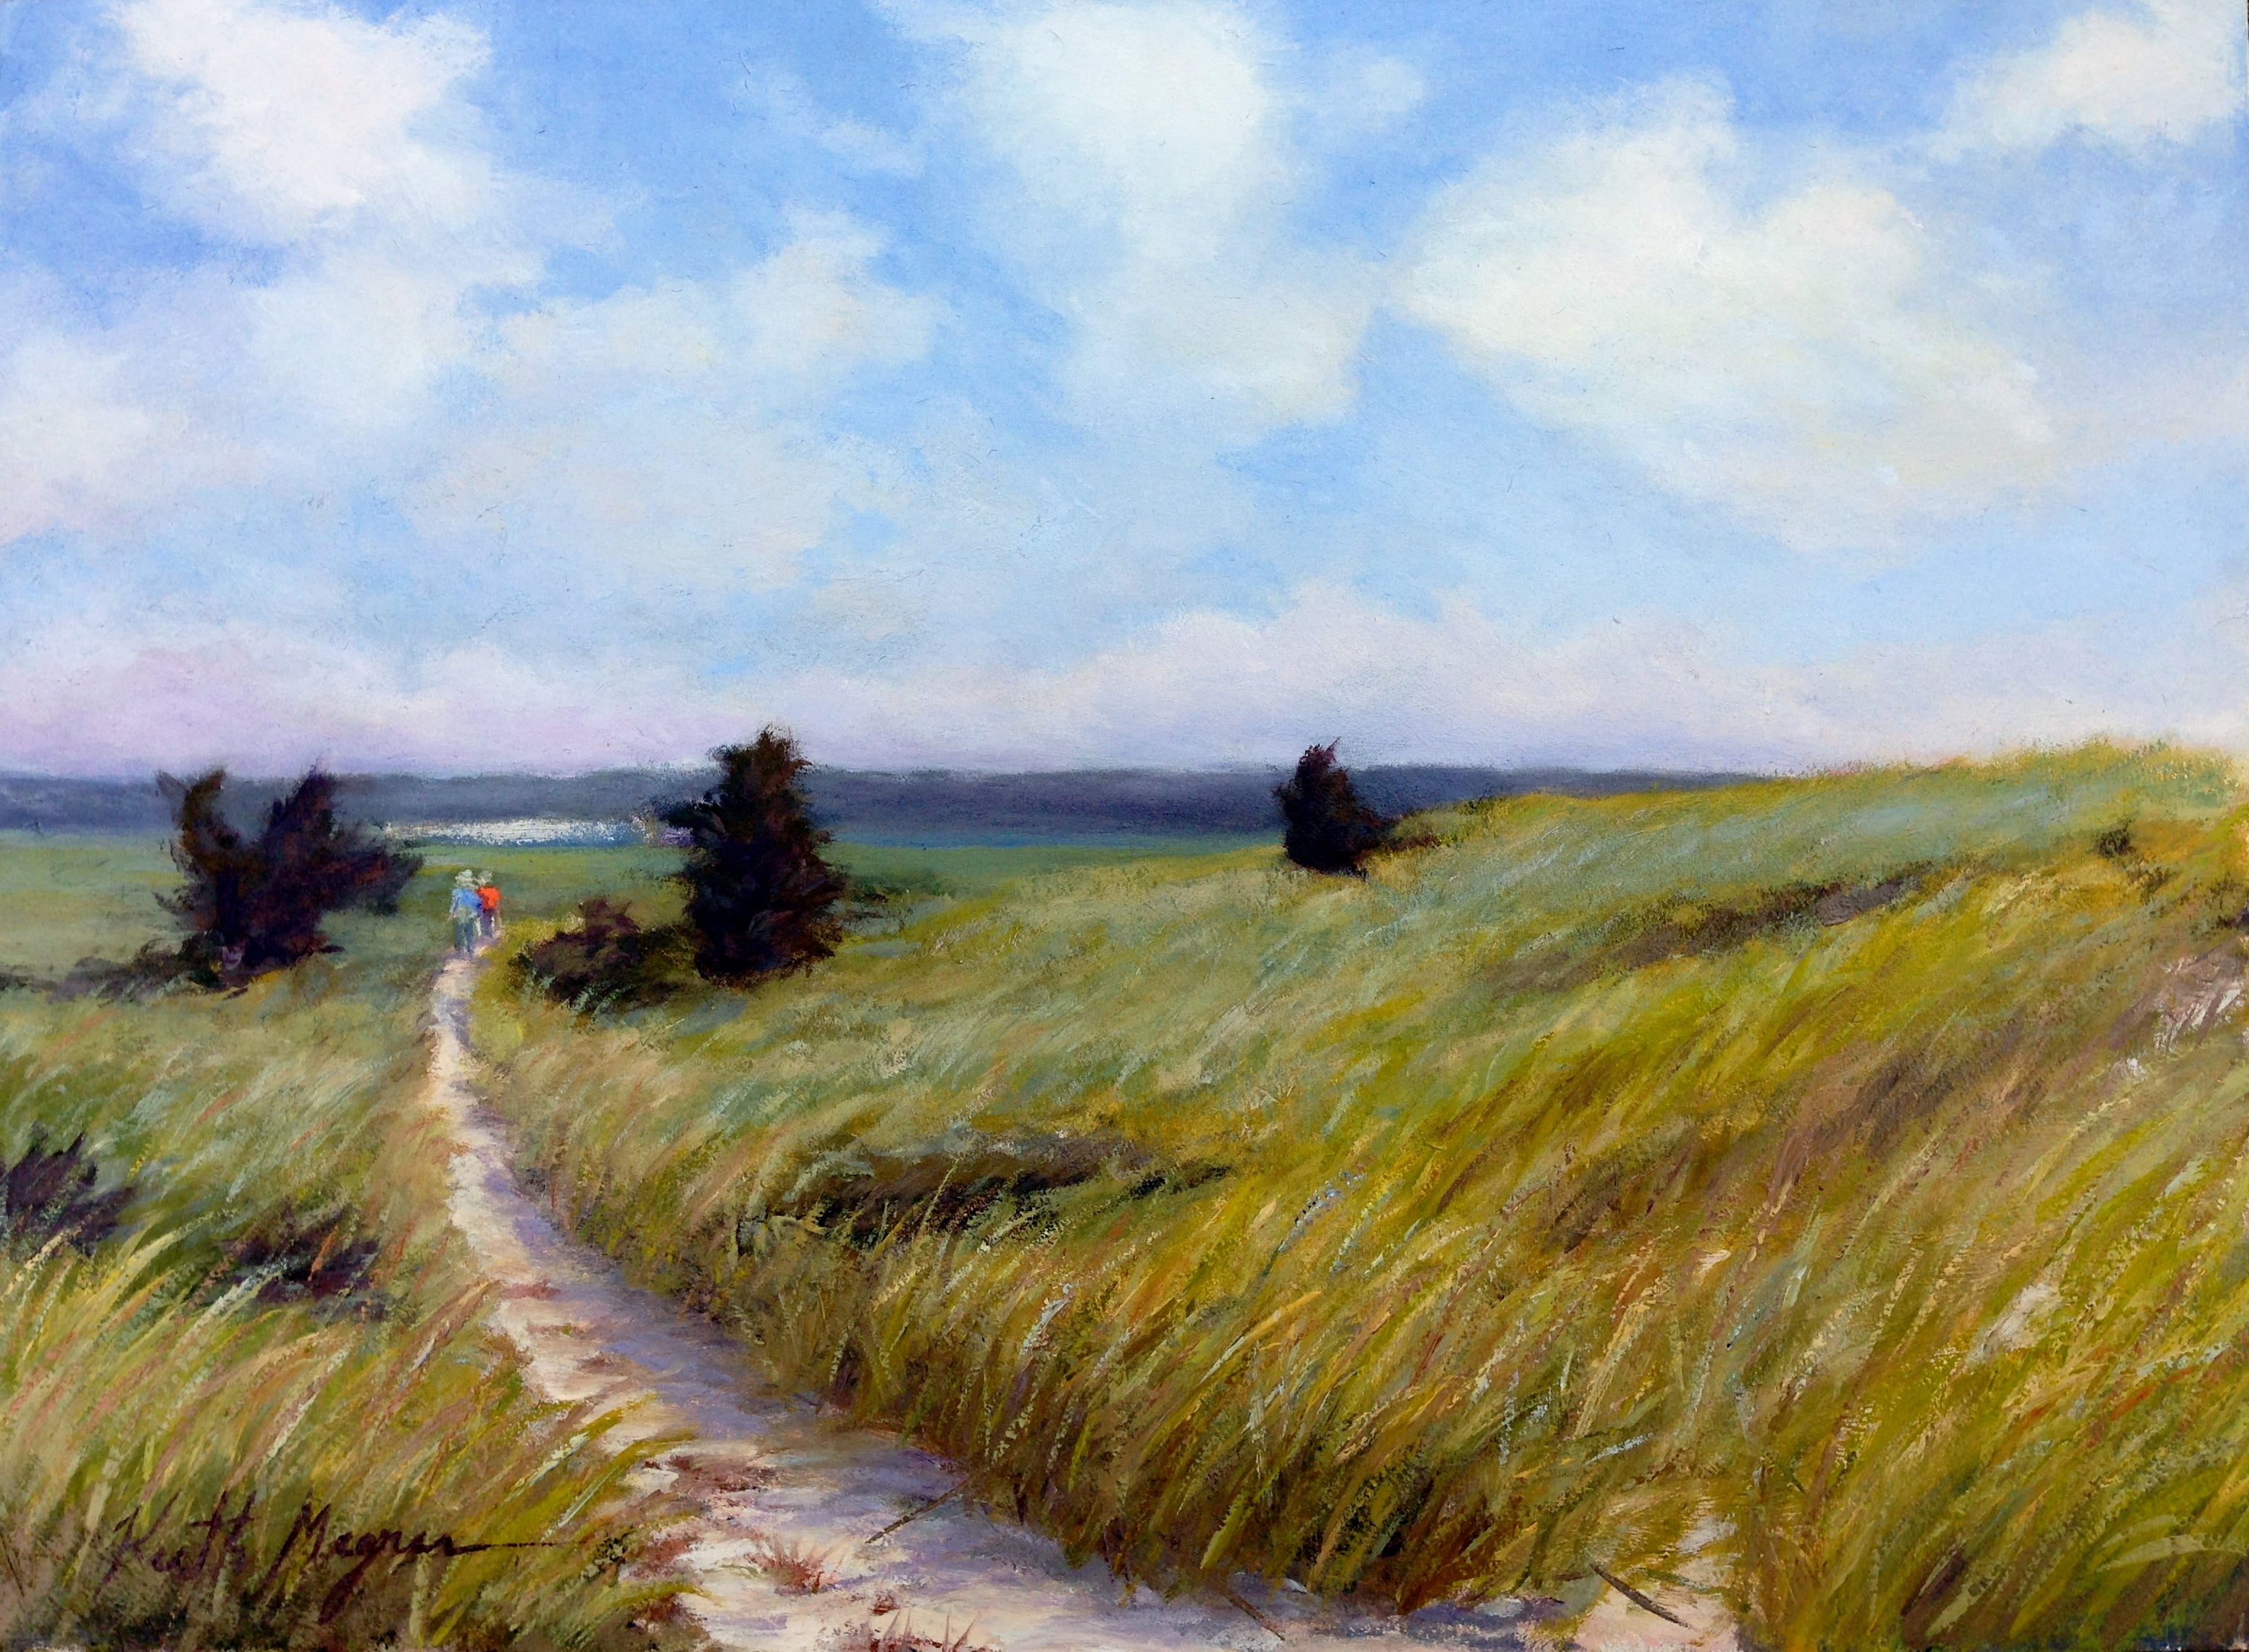 Original plein air painting by Keith Magner featured in CAFA juried national art show.  Browse art for sale for marine paintings, coastal paintings, plein air paintings and landscape paintings under available paintings that can make a unique gift